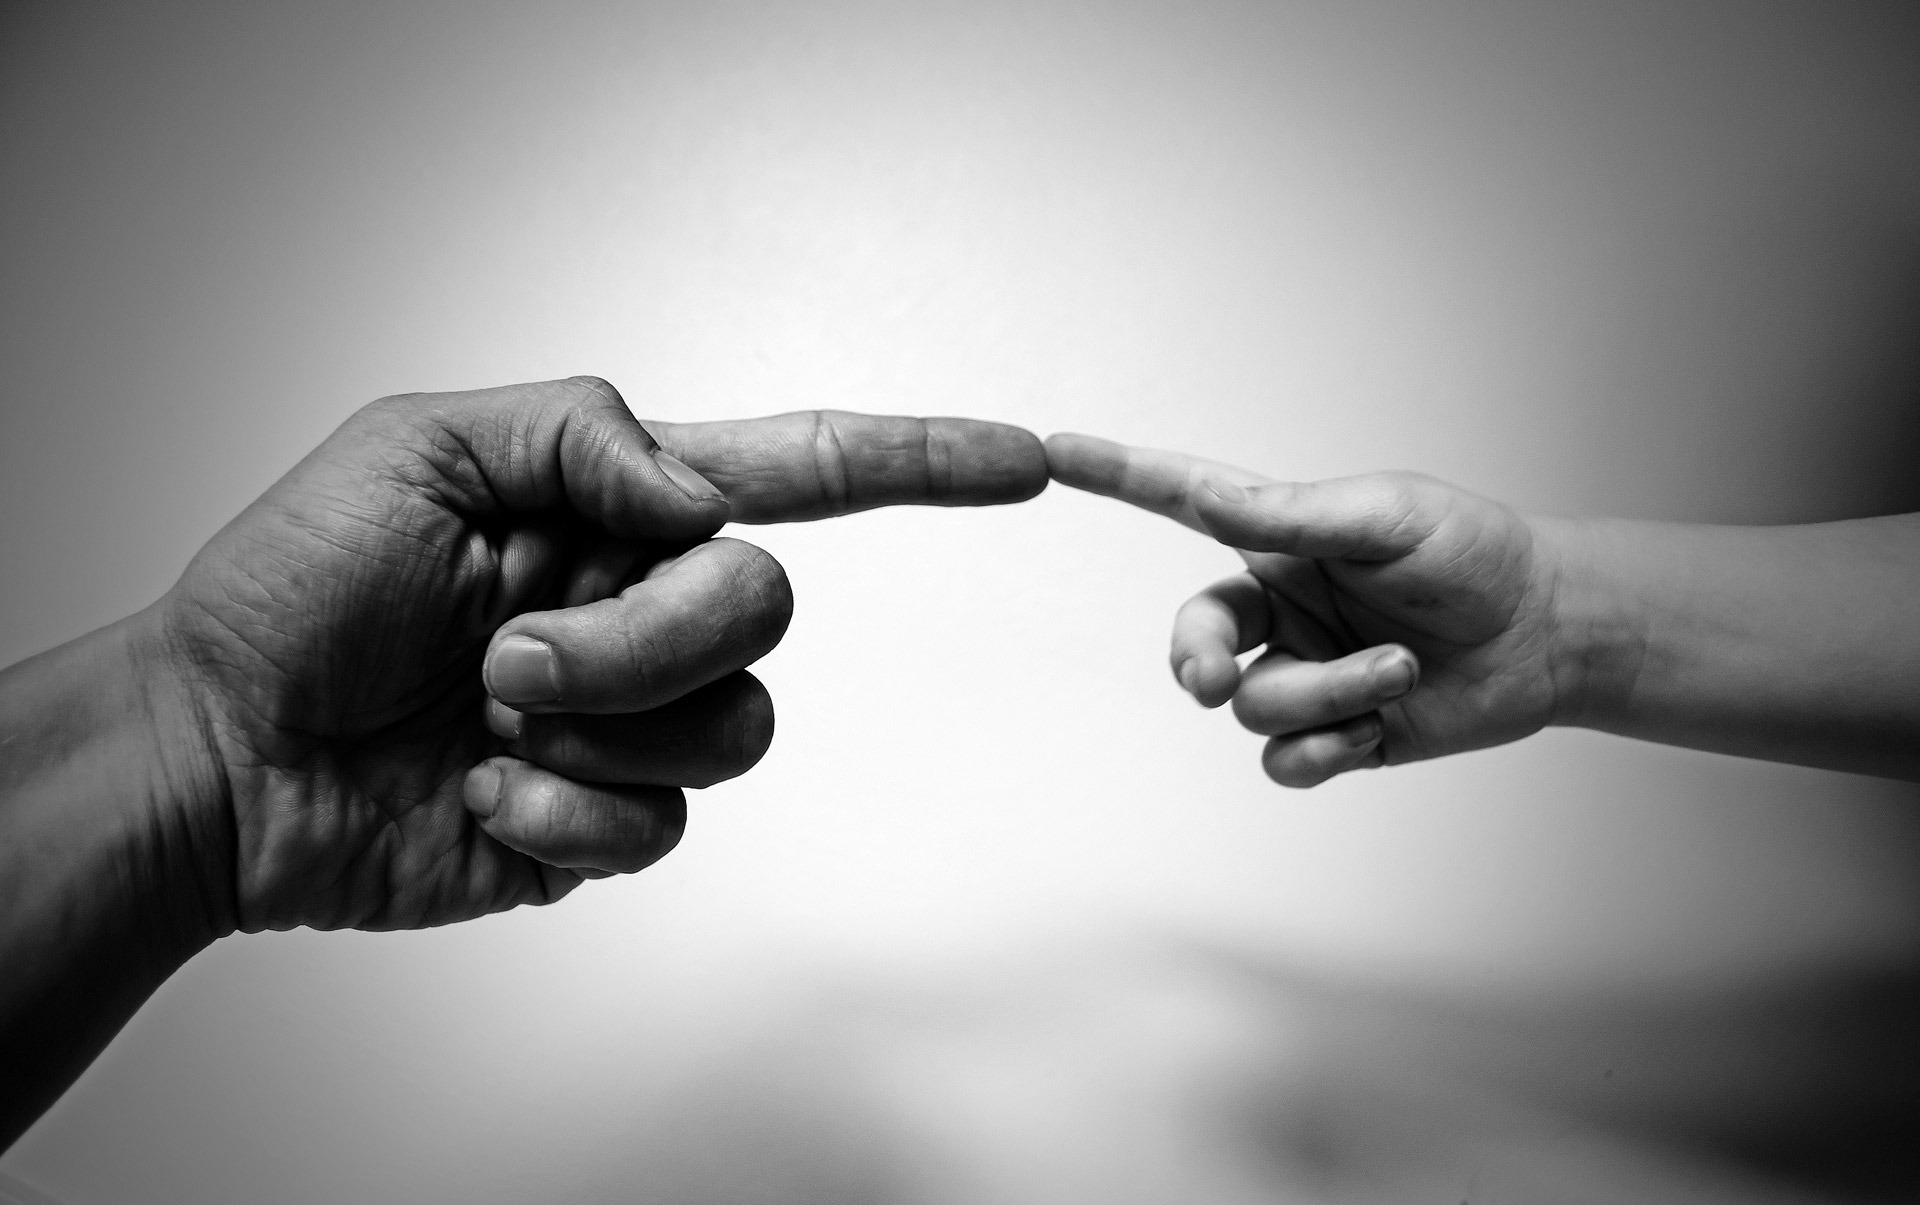 Fingers of child and women touching